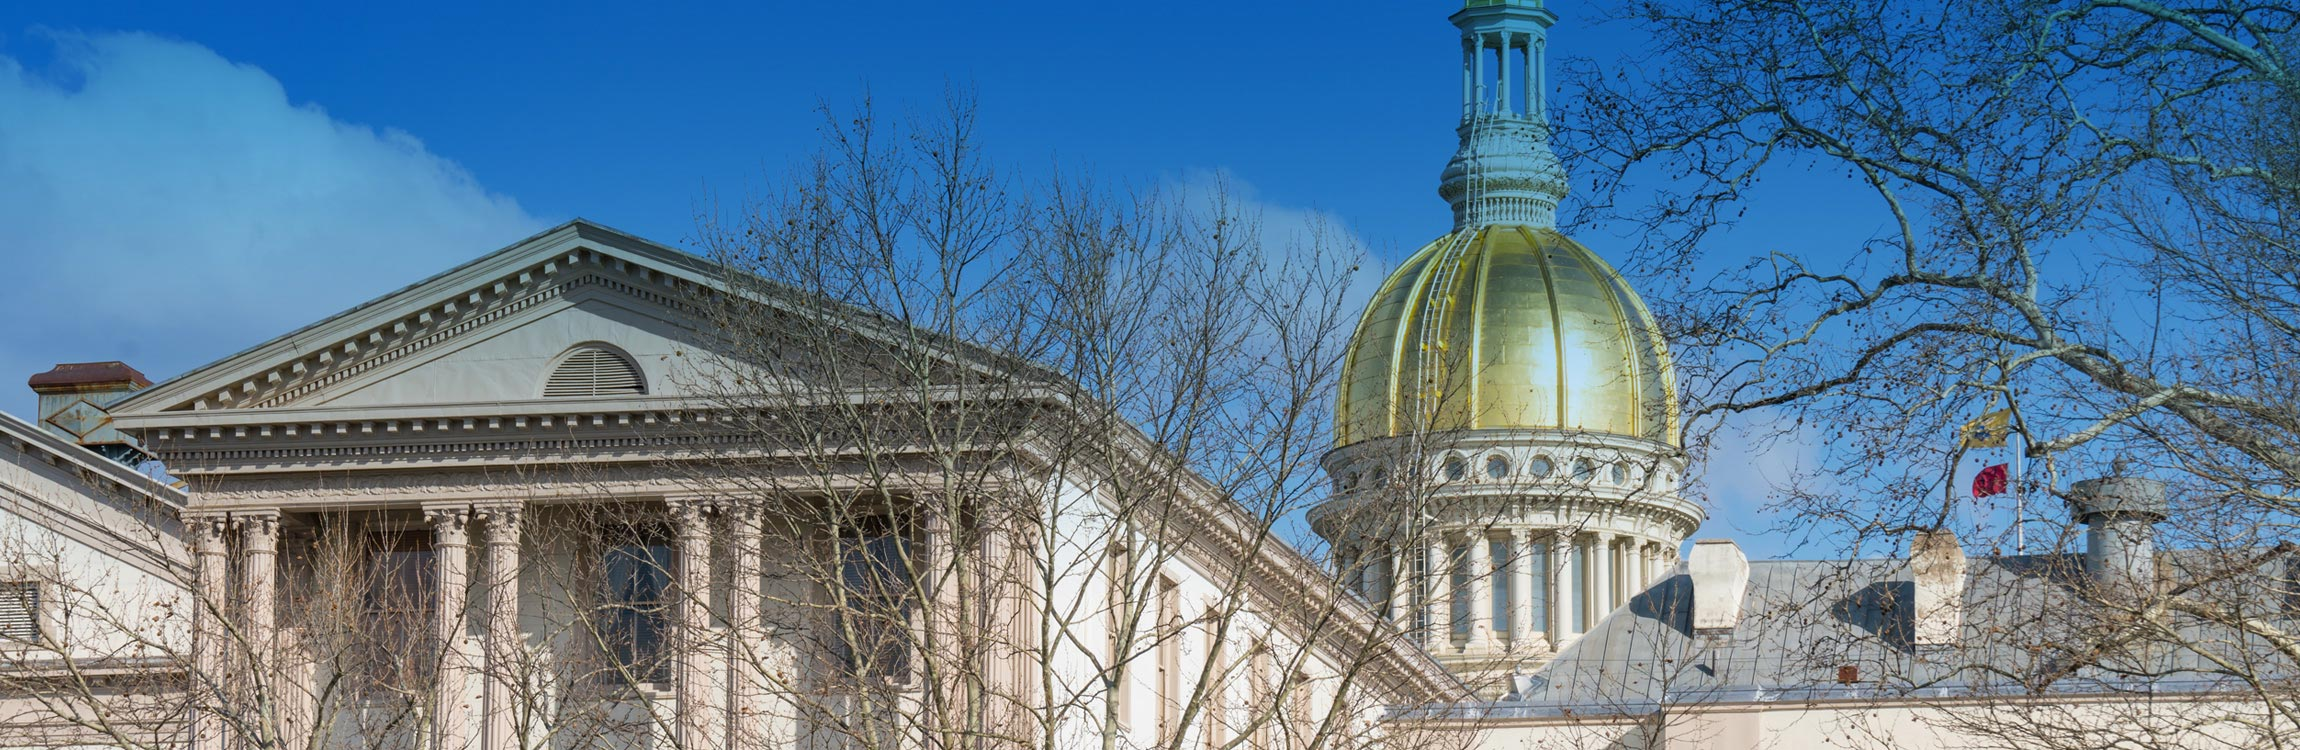 Trenton, NJ State House